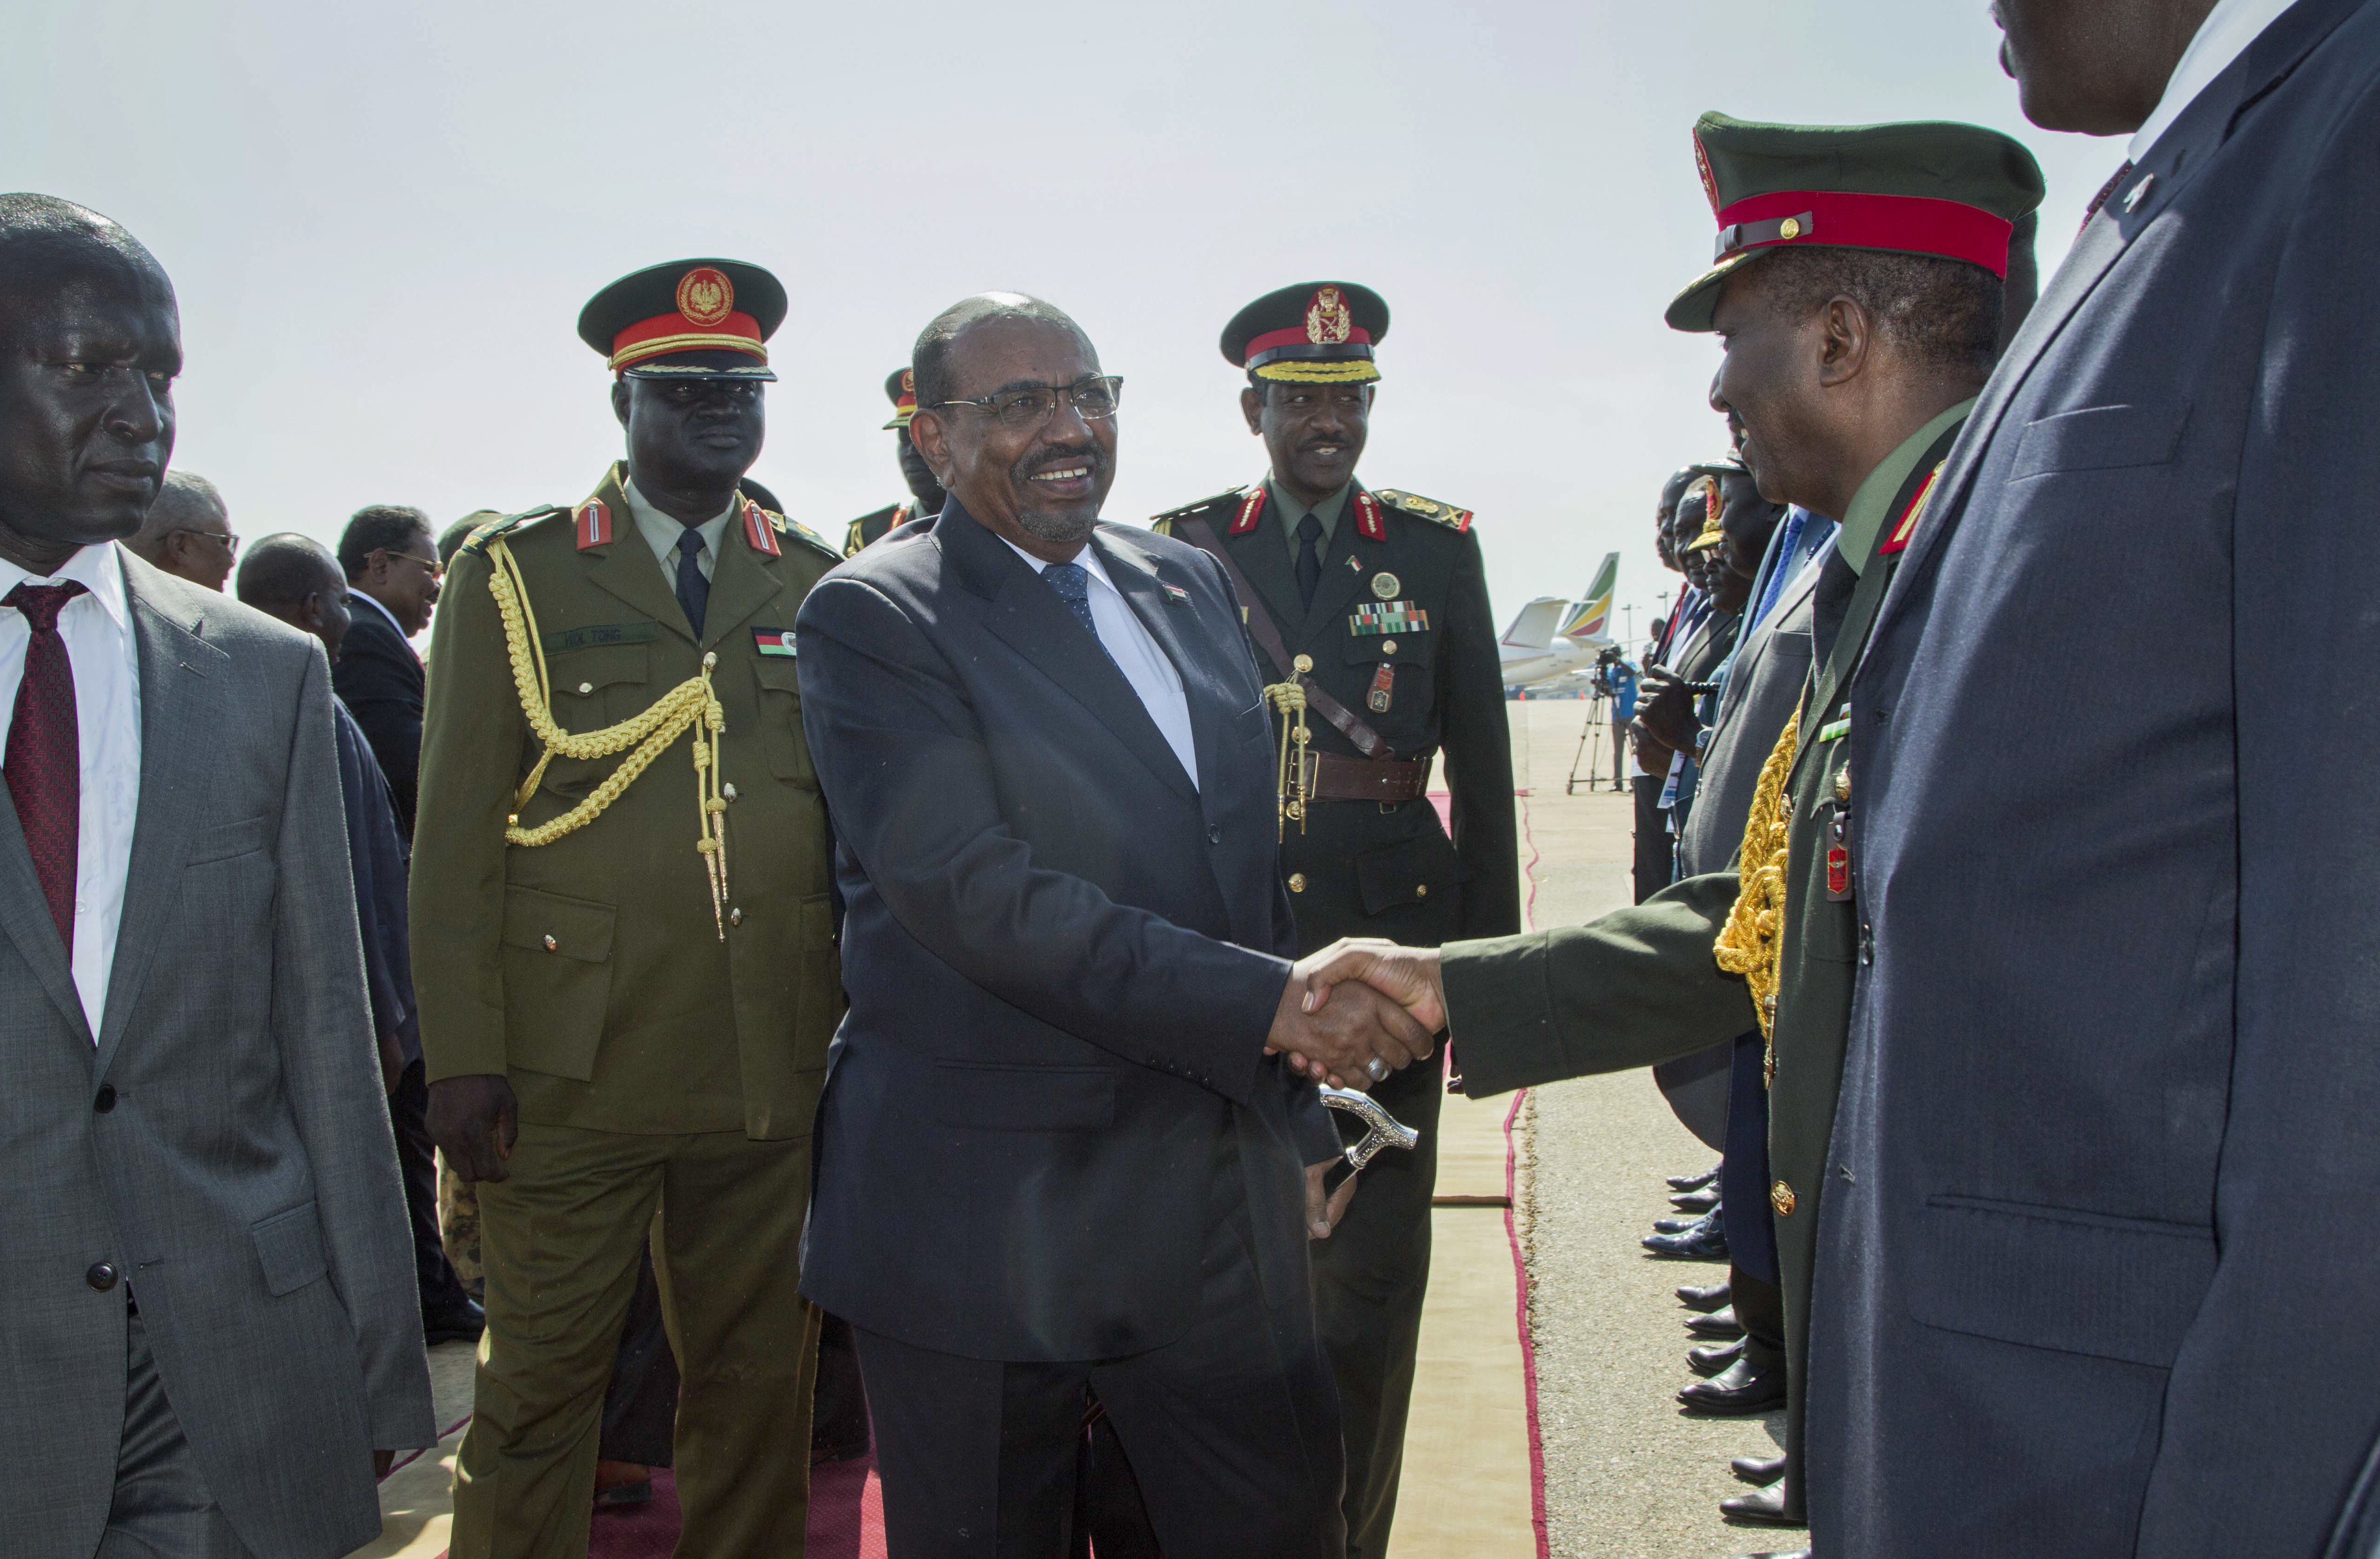 Sudan's President Omar al-Bashir, center, greets dignitaries as he arrives at the airport in Juba, South Sudan Wednesday, Oct. 31, 2018. For the first time since fleeing the war-torn country more than two years ago, South Sudan's opposition leader Riek Machar returned on Wednesday to take part in a nationwide peace celebration. (AP Photo/Bullen Chol)